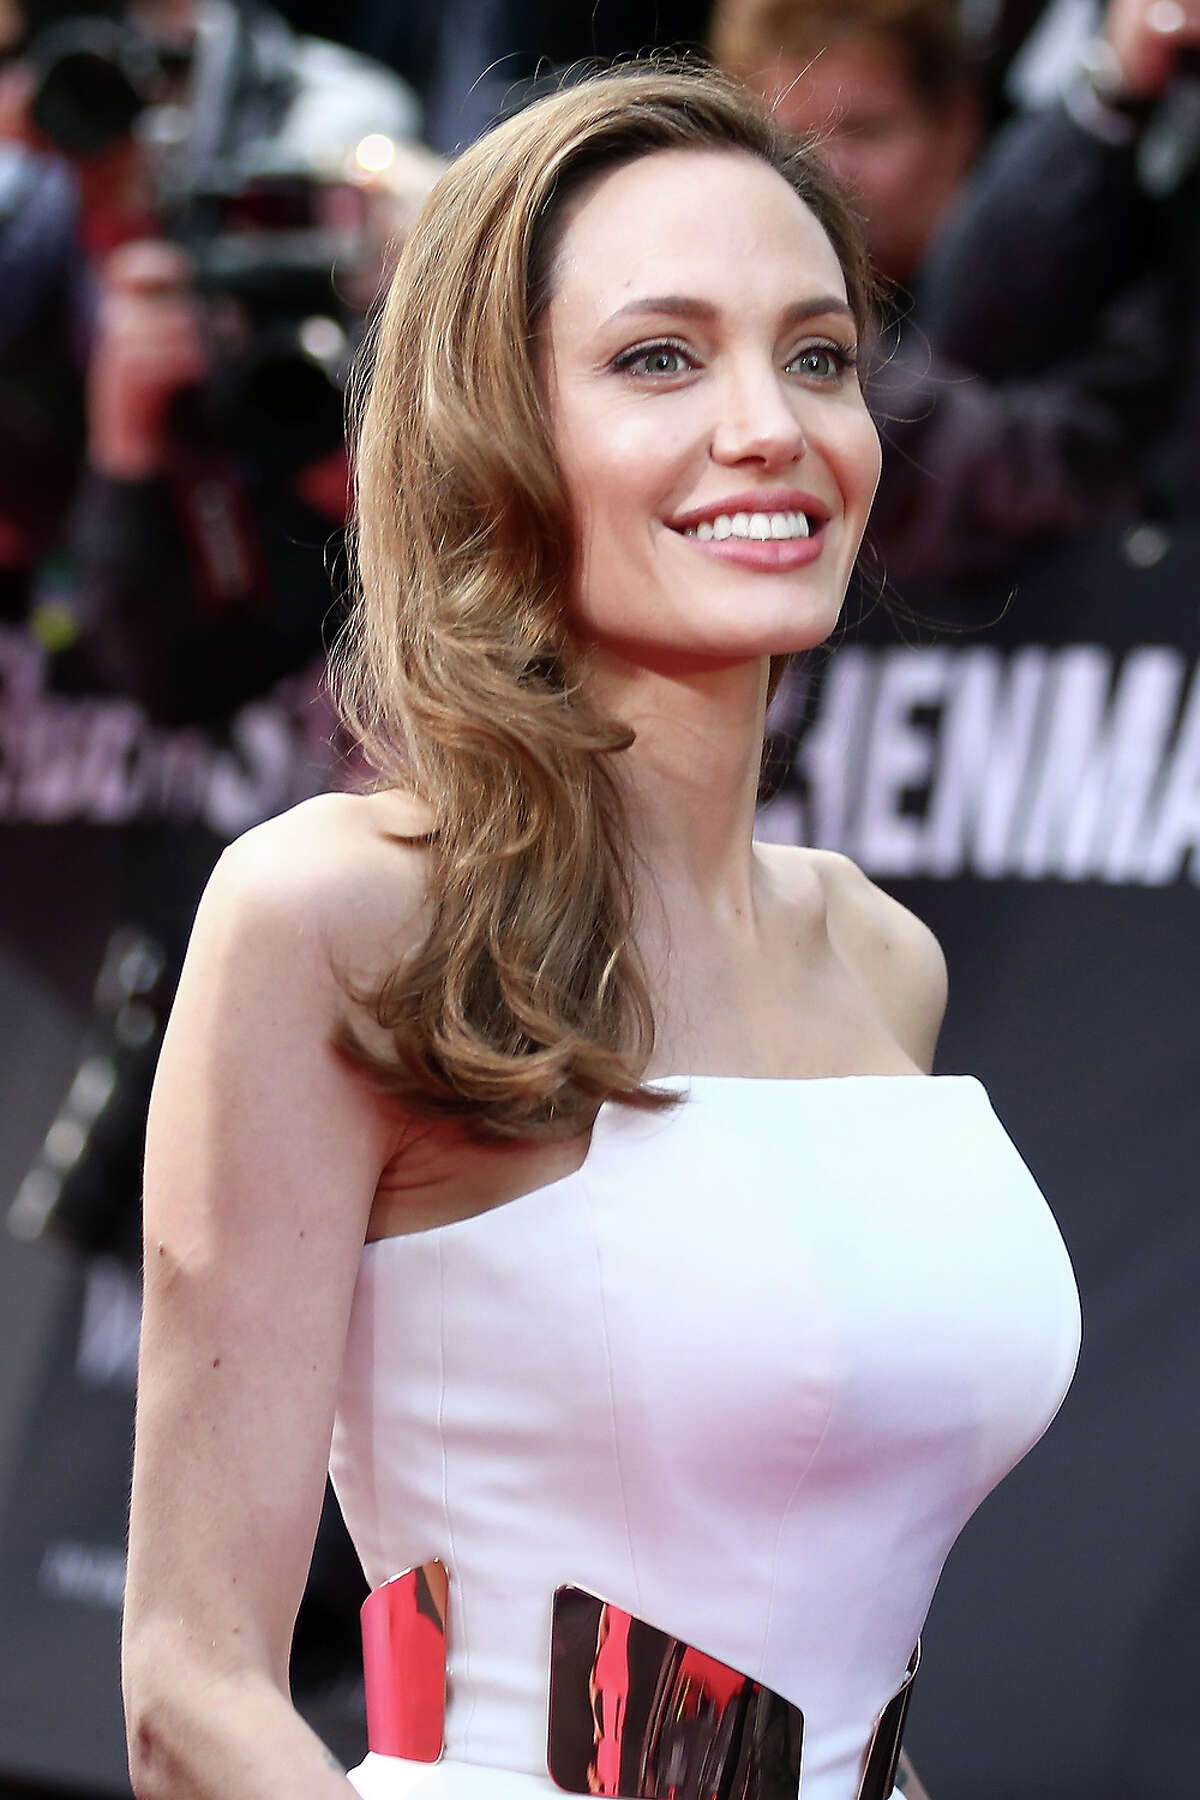 Forbes magazine crunches the numbers and tells us which actresses pull down the most cash.Angelina Jolie tops the list, making an estimated $33 million, says Forbes.com, who says they consulted agents and industry experts to arrive at the numbers.